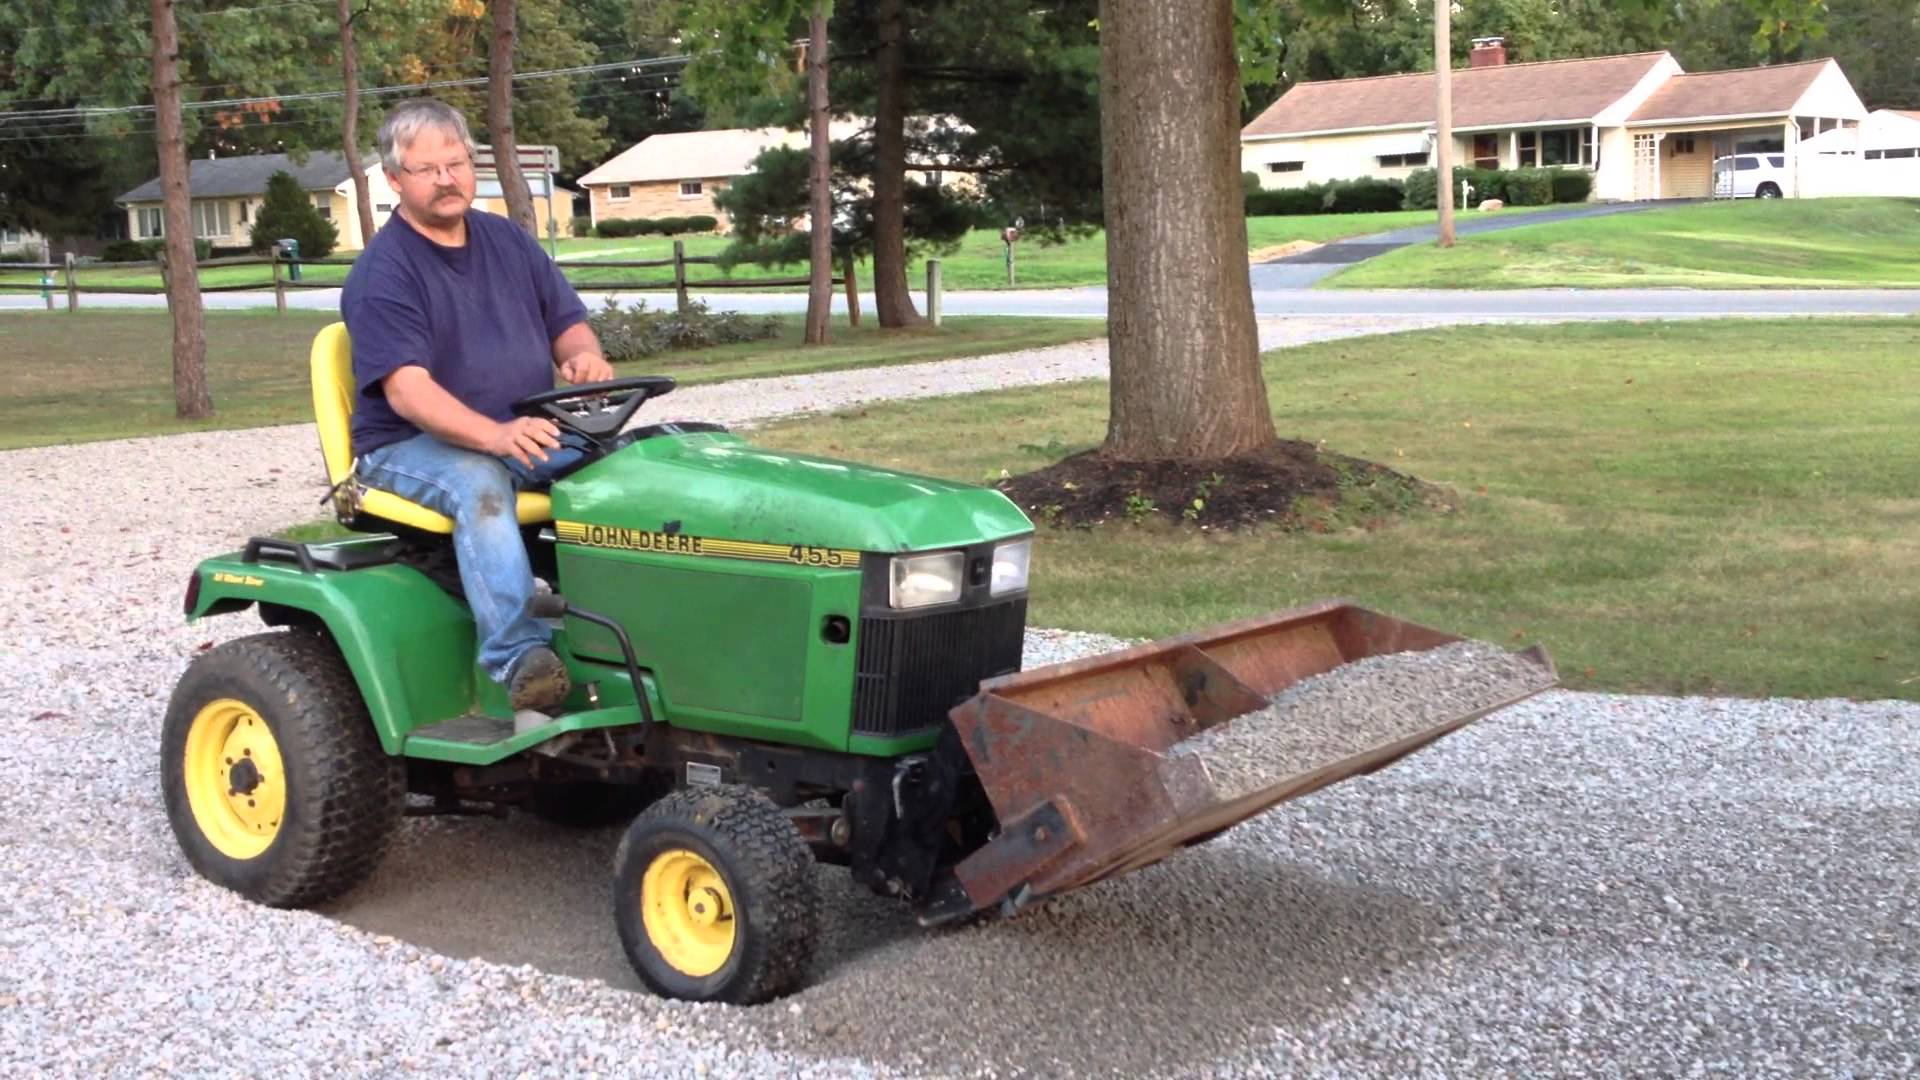 MyTractorForum.com - The Friendliest Tractor Forum and ...